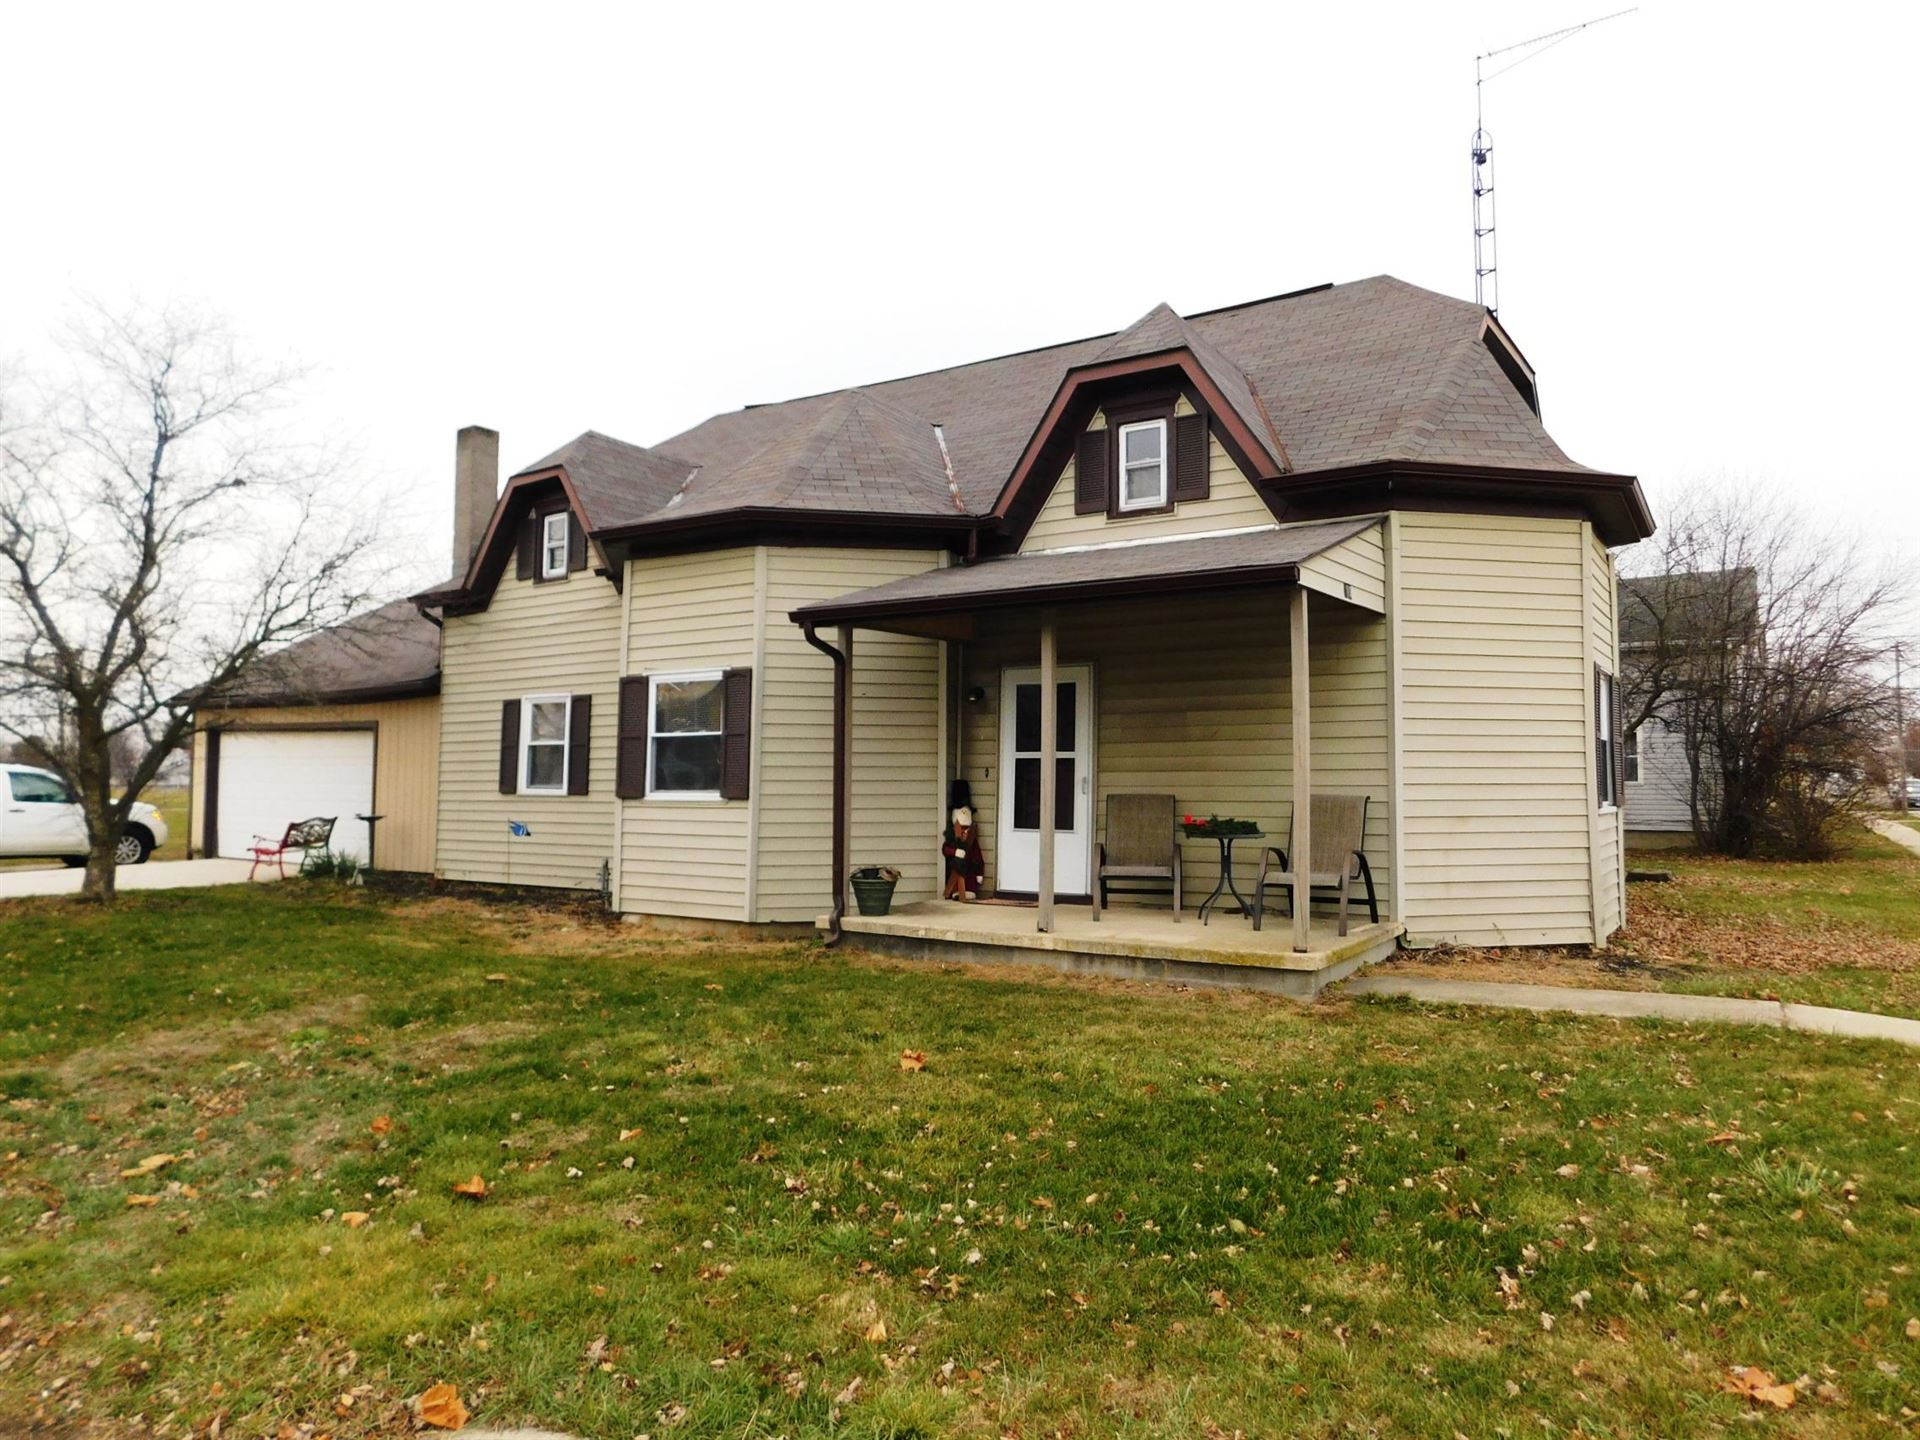 105 S SECOND Street, Anna, OH 45302 - #: 1000145